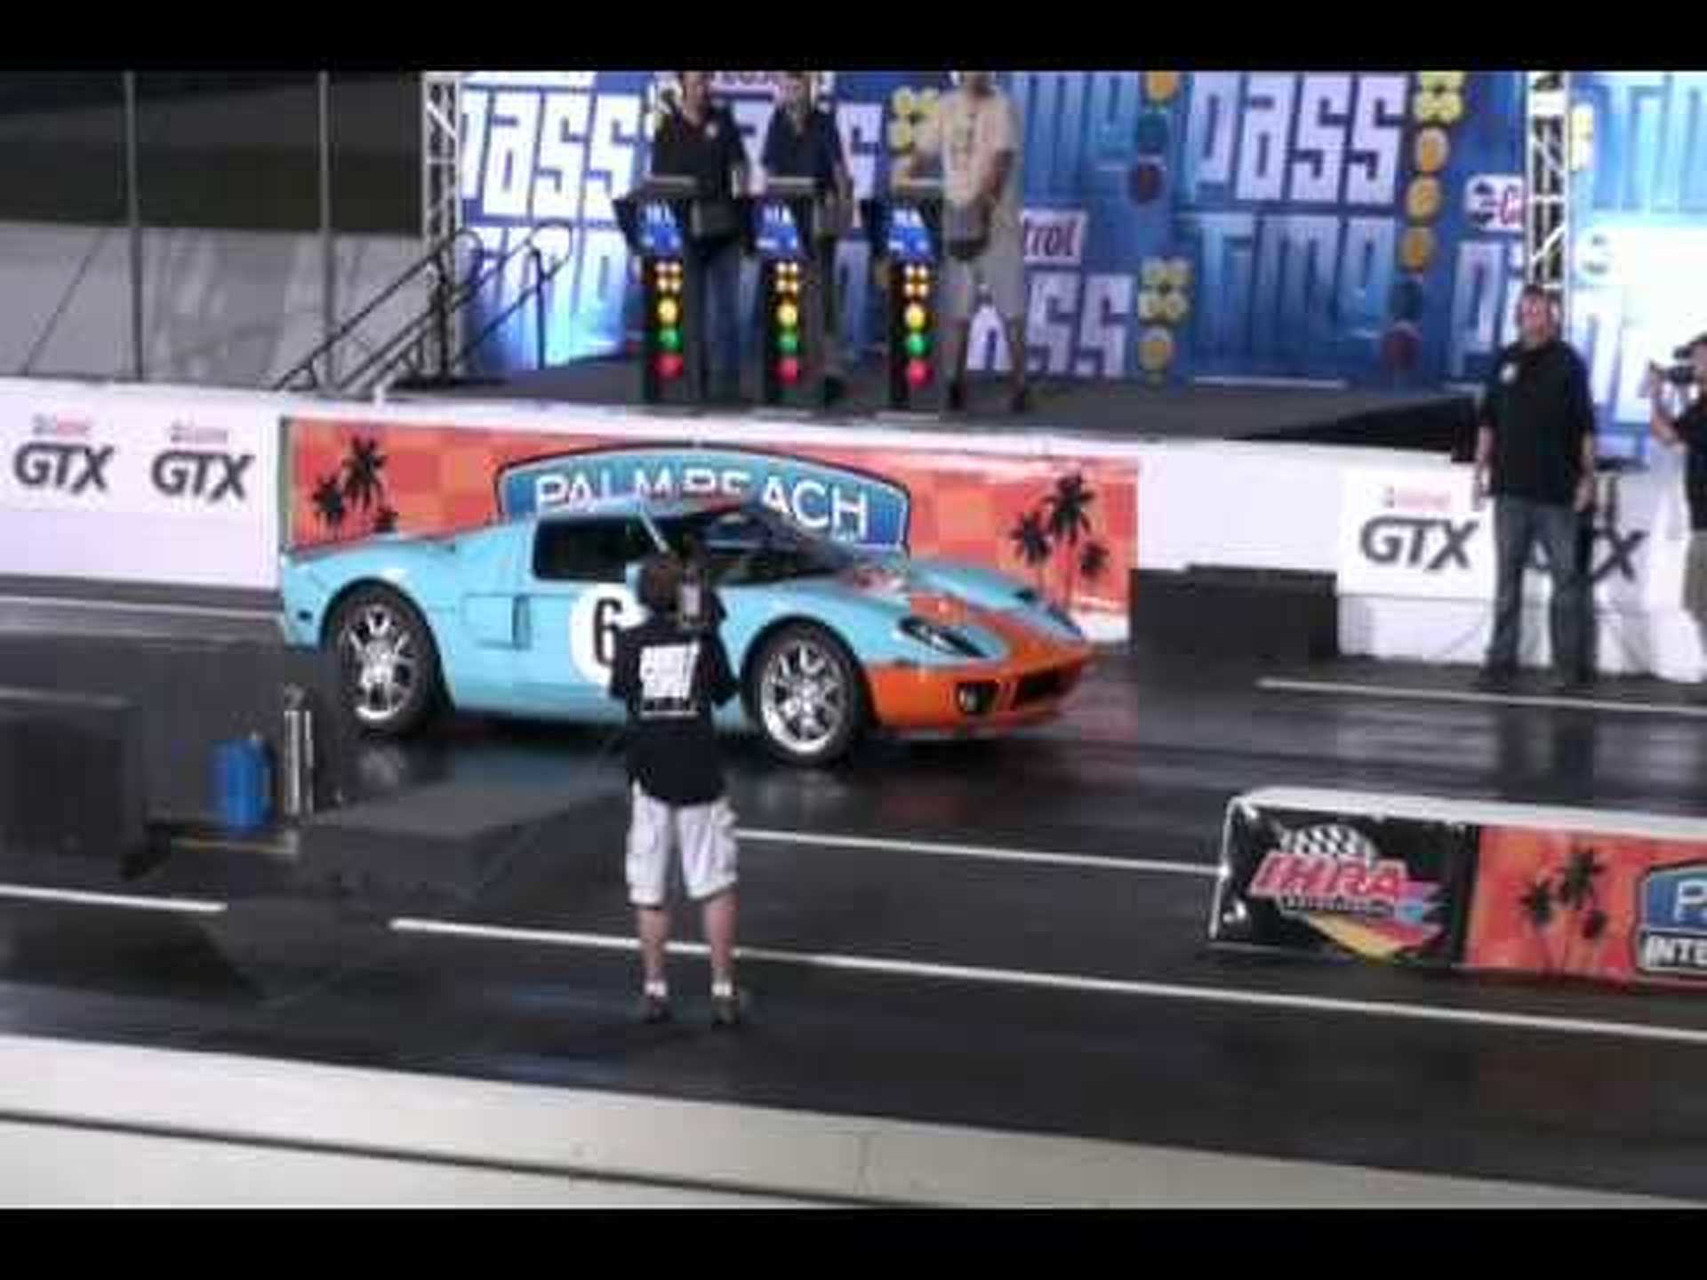 2006 Ford GT Heritage - Gulf Oil - Drag Race - Road Test TV